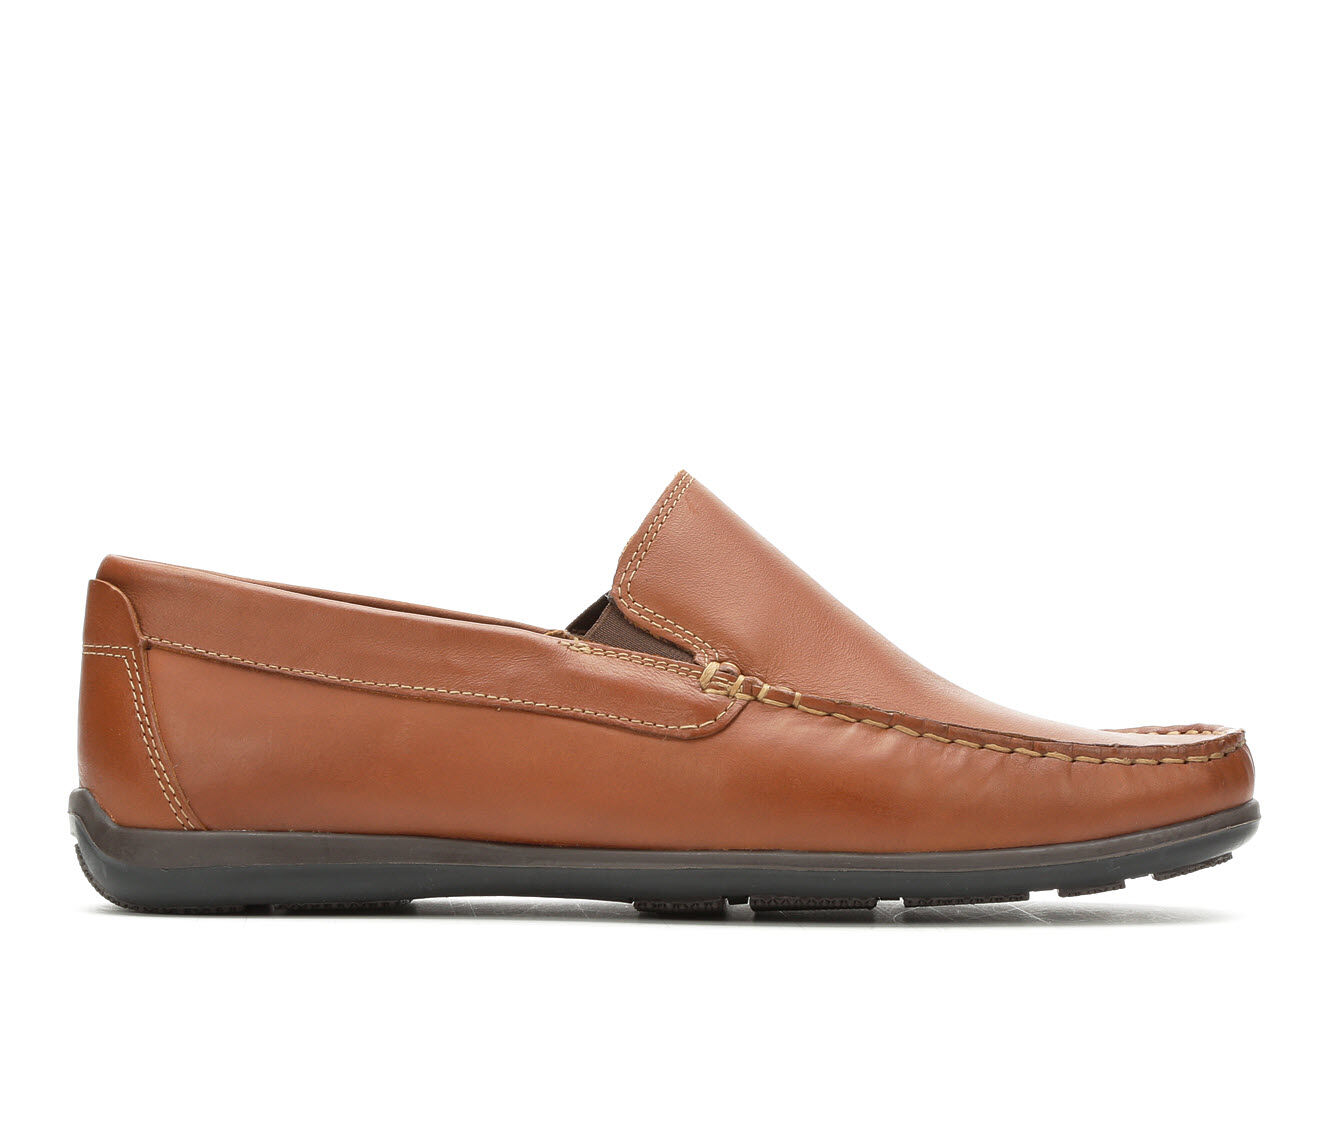 Men's Florsheim Intrepid Venetian Loafers Cognac